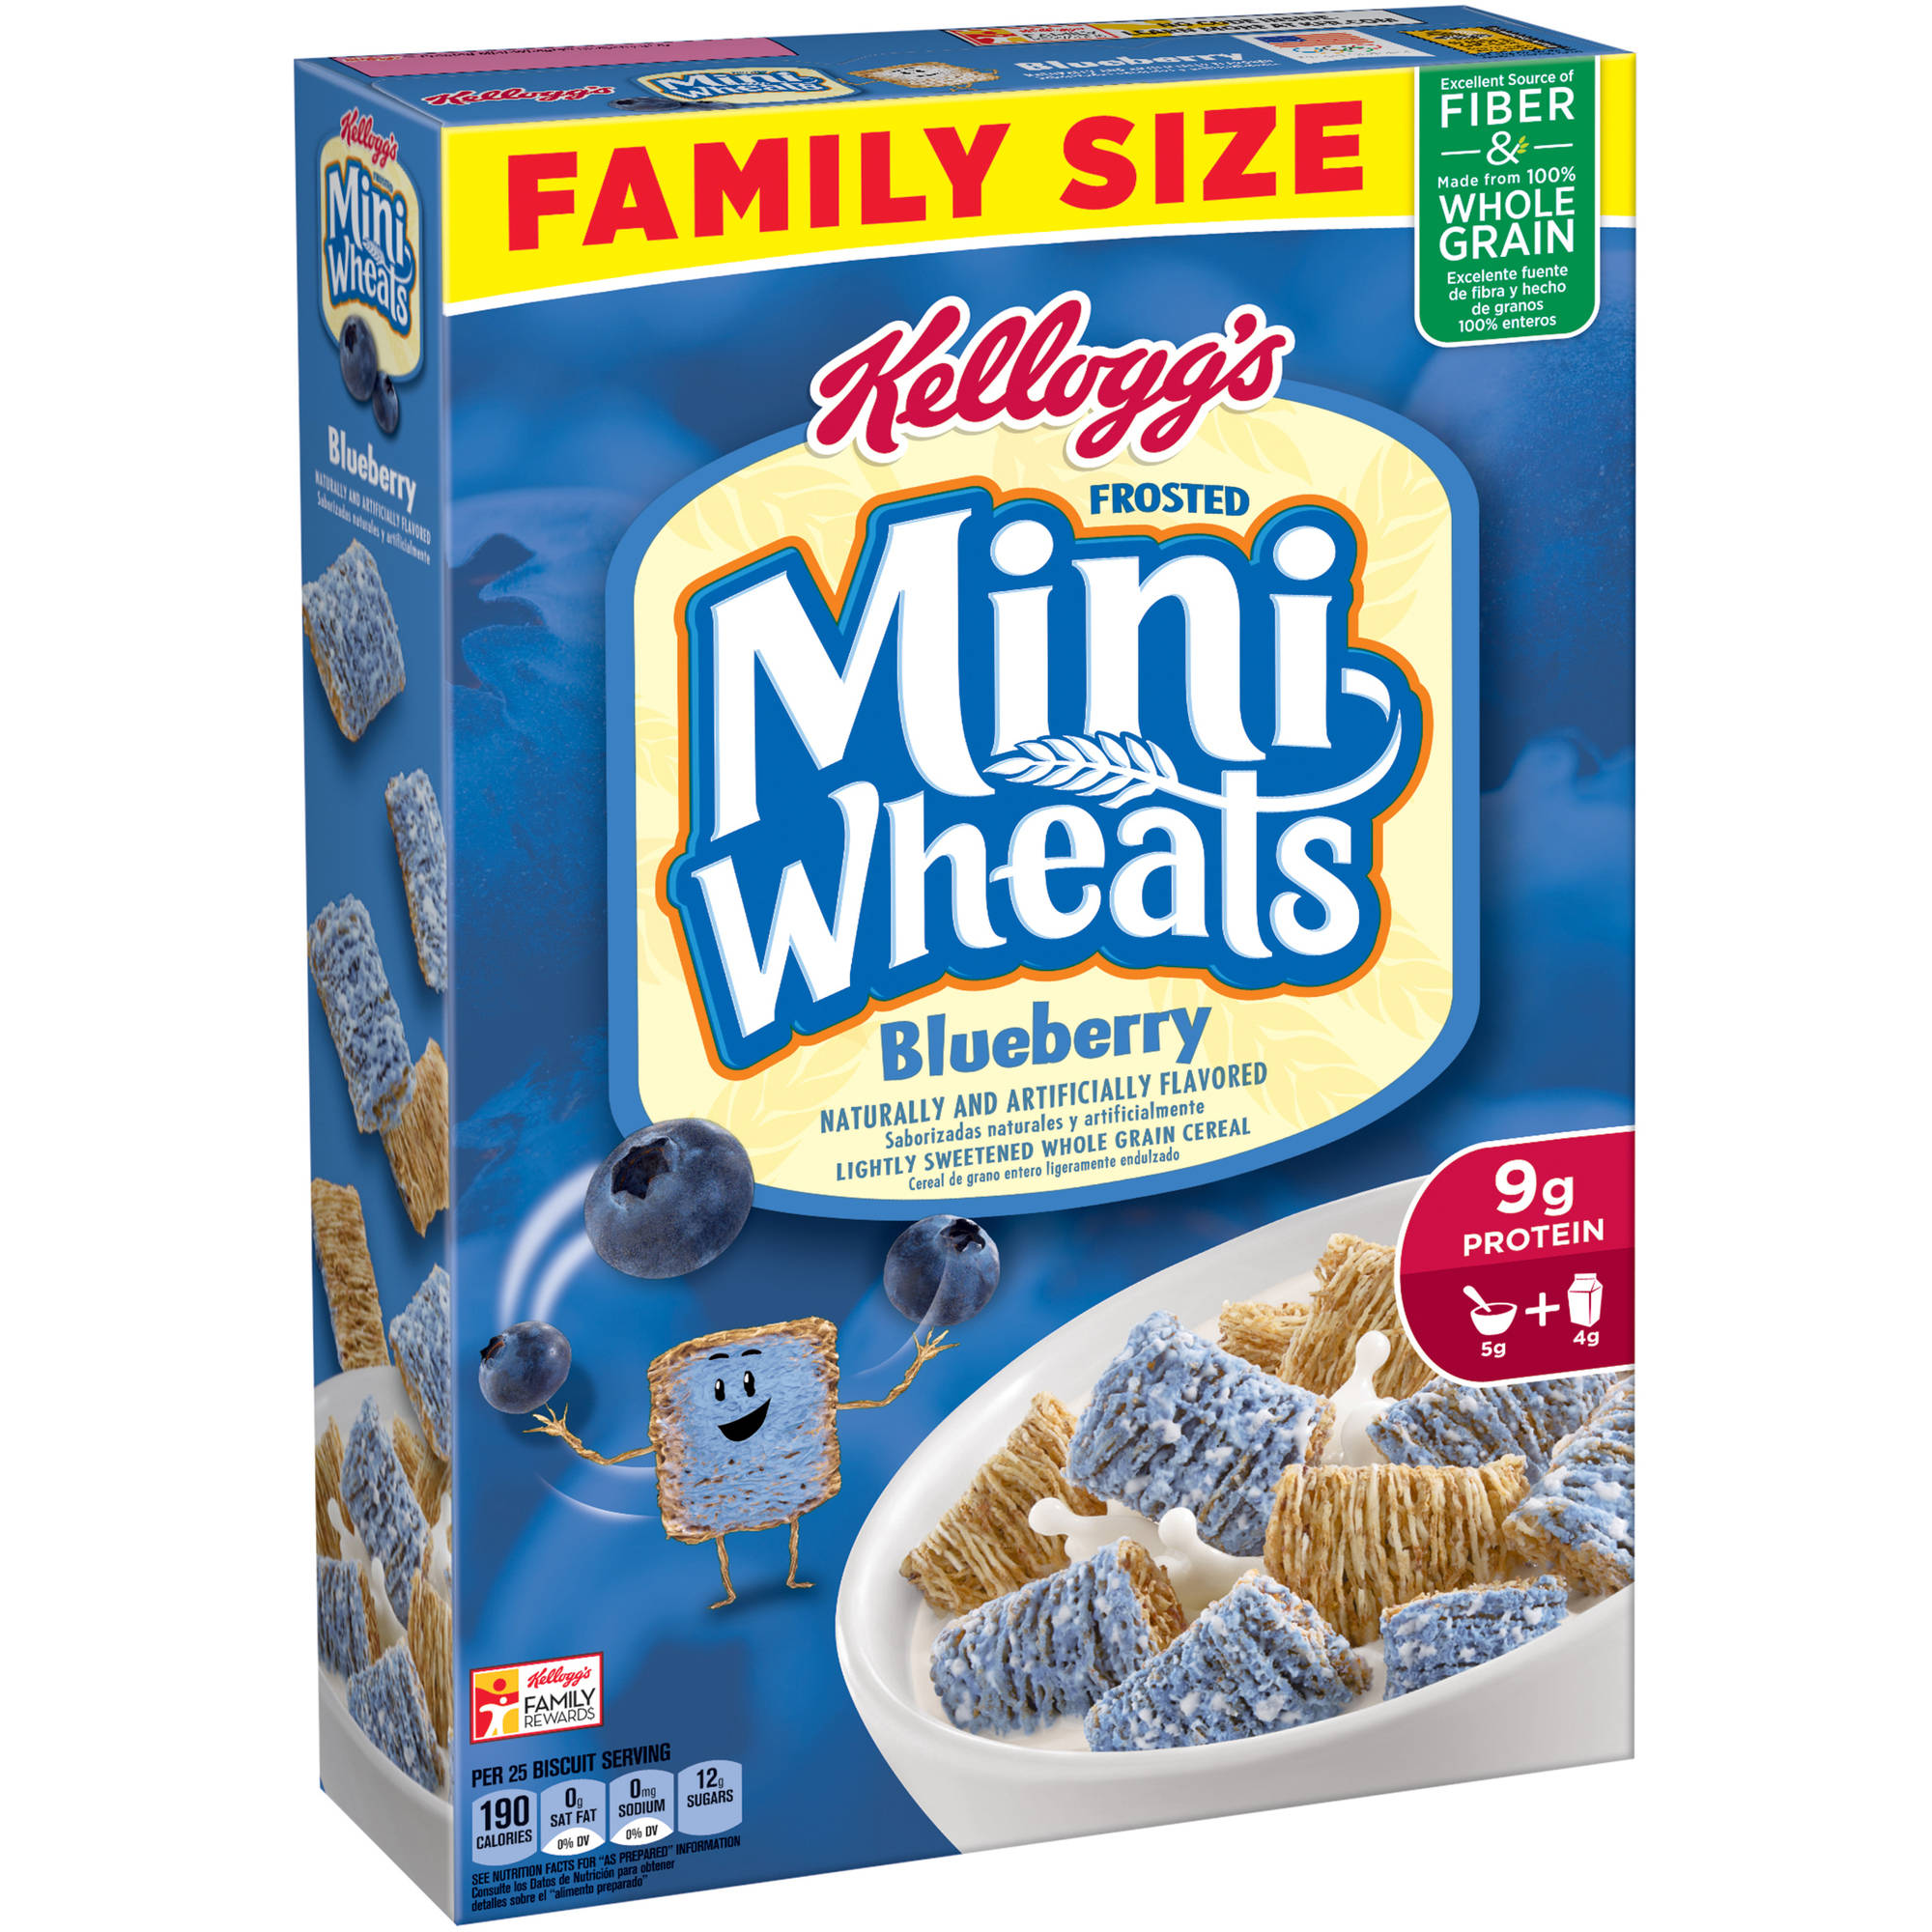 Kellogg's Frosted Mini-Wheats Blueberry Whole Grain Cereal, 21 oz